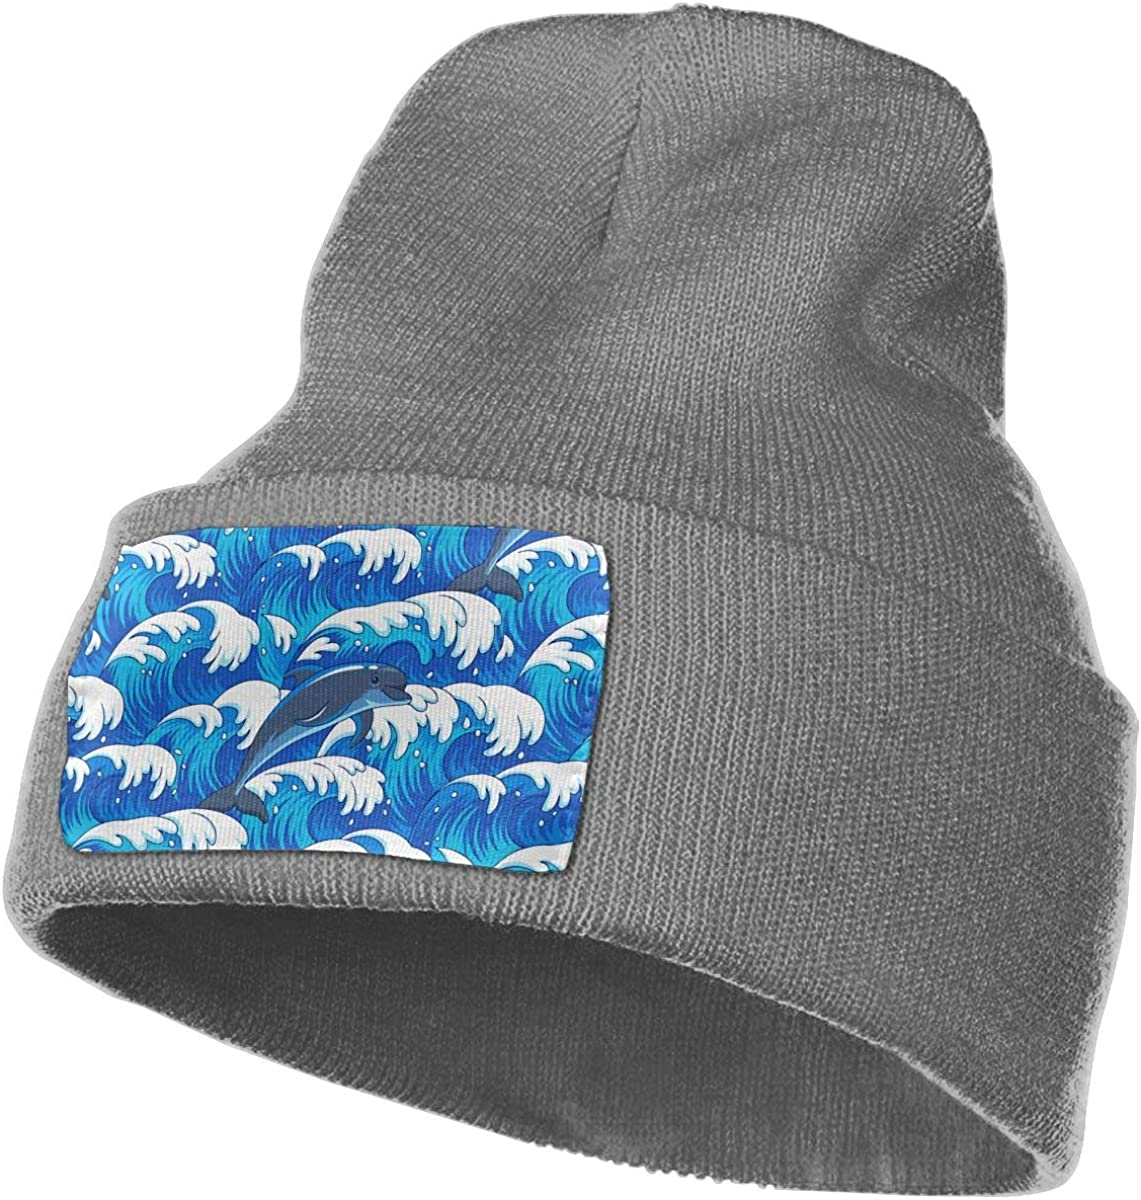 Love Sea Dolphin Unisex Winter Knitting Woolen Hat Warm Cap